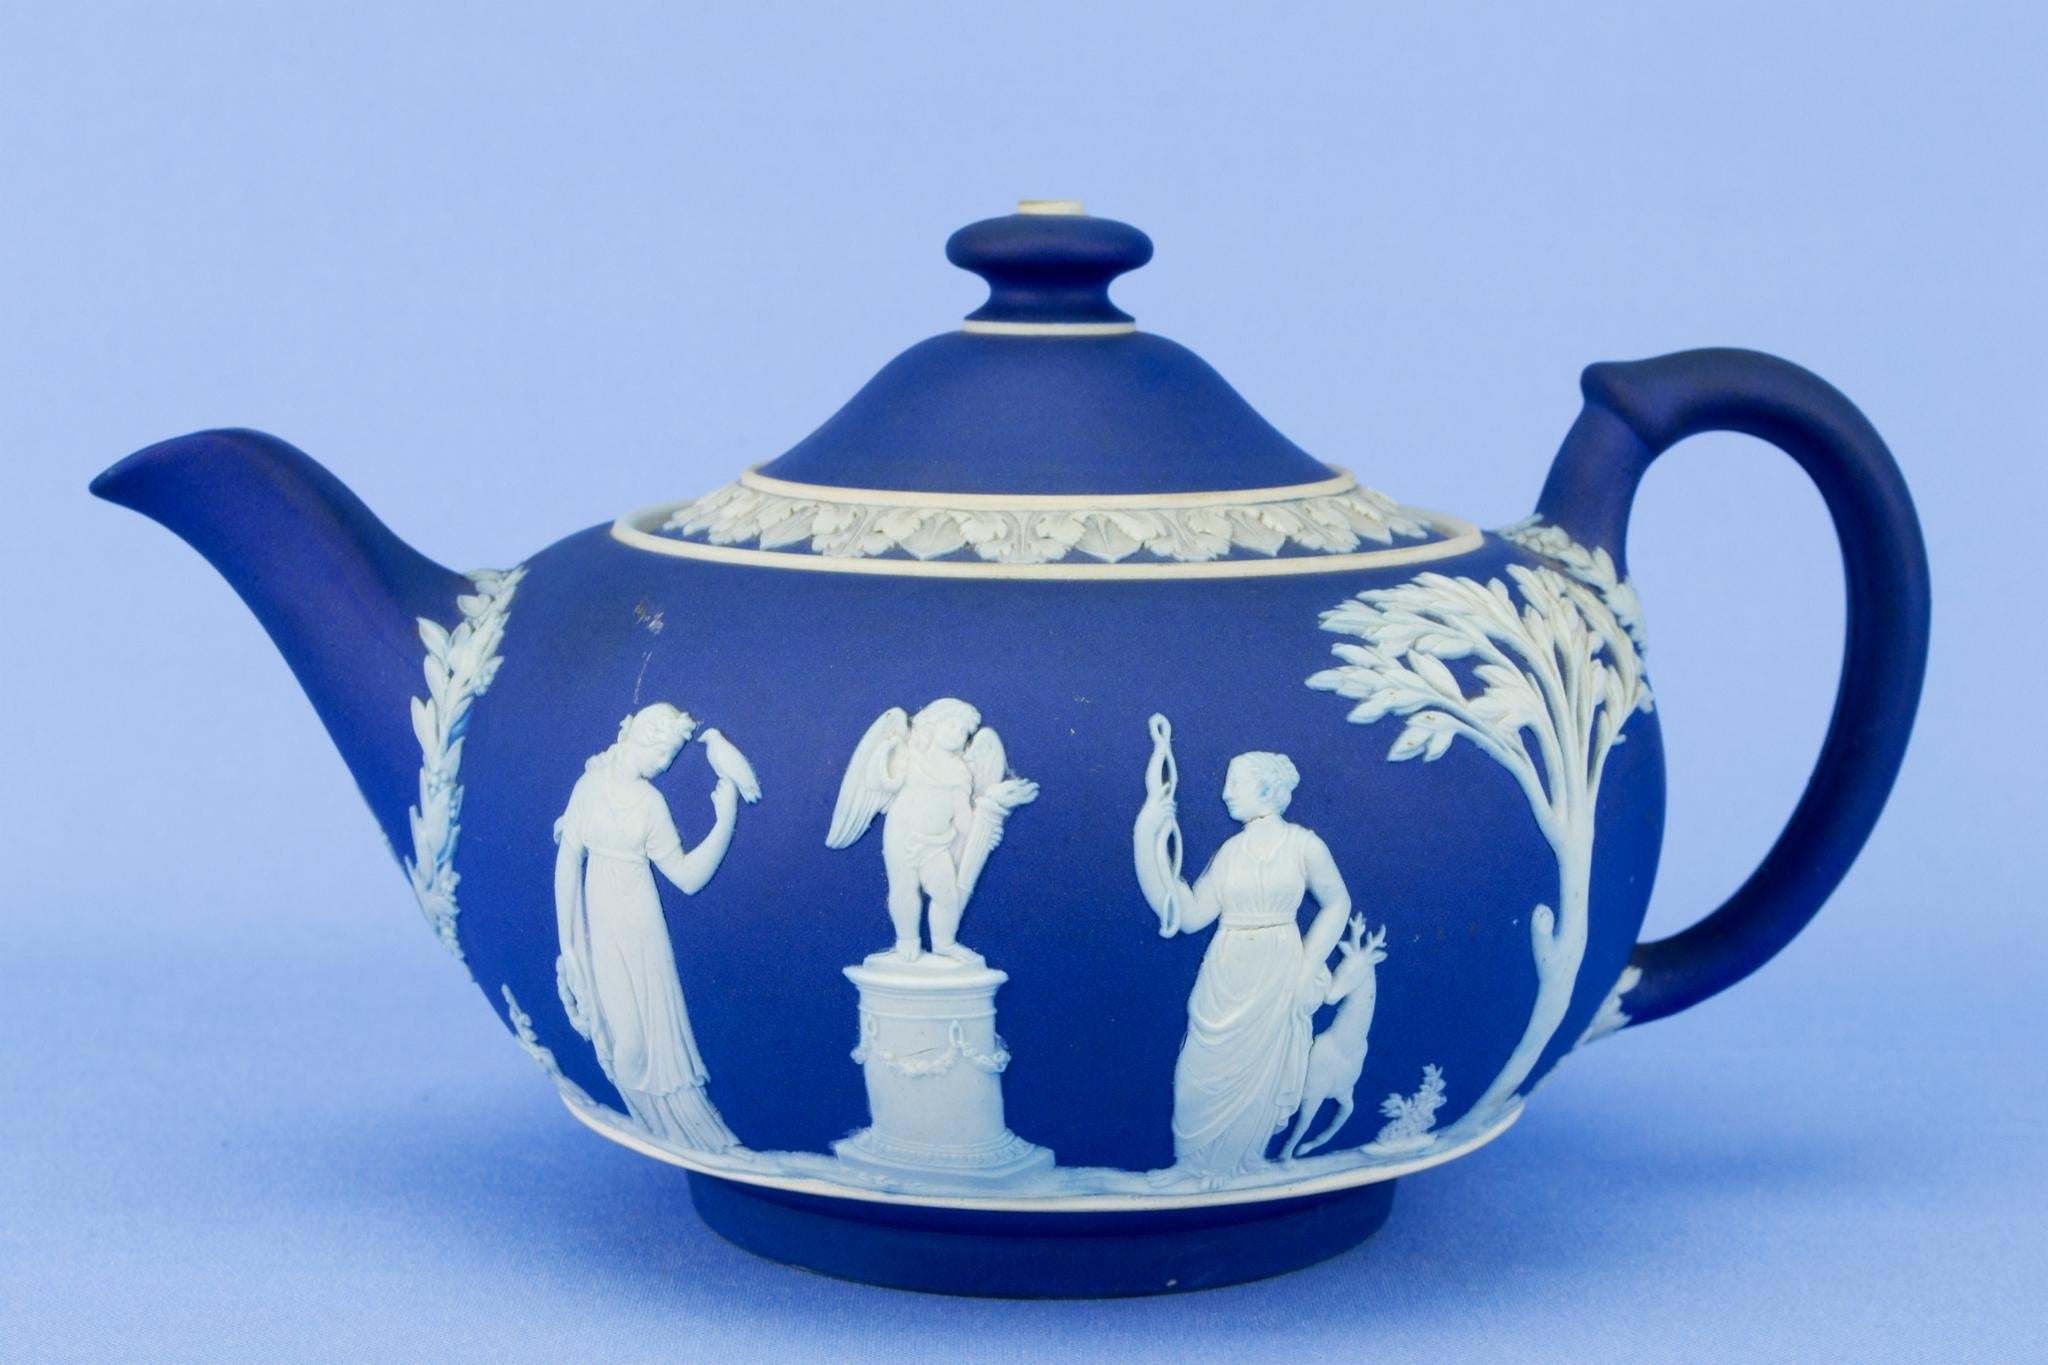 Jasperware Wedgwood Teapot, English Early 1900s